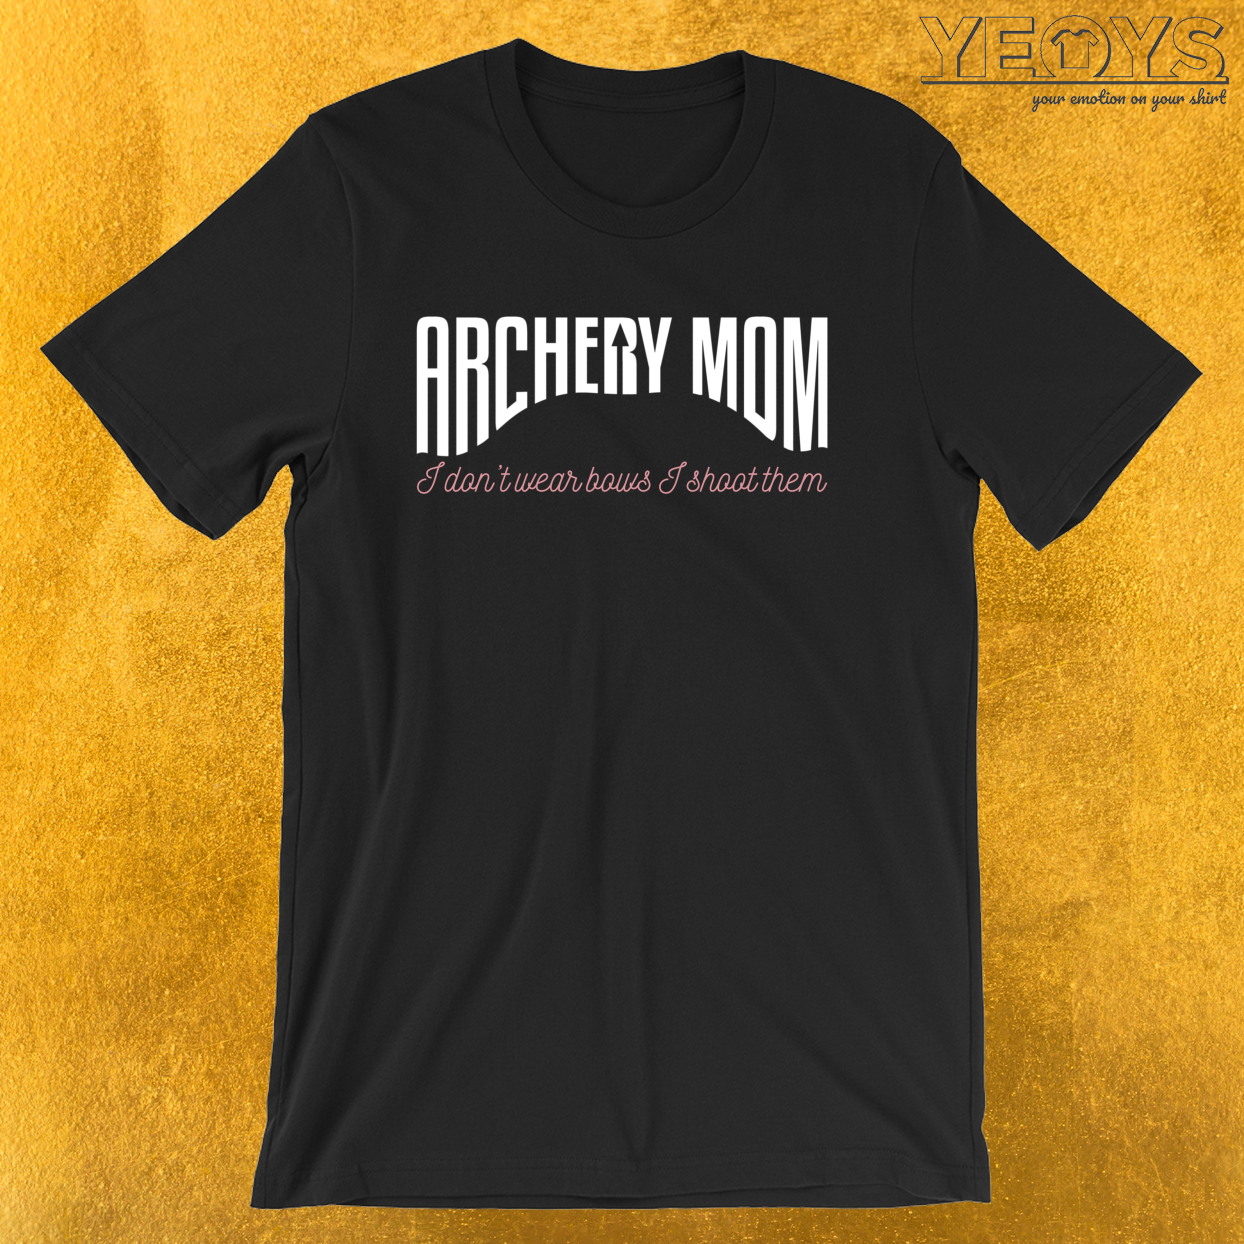 Archery Mom I Don't Wear Bows I Shoot Them – USA Archery Tee